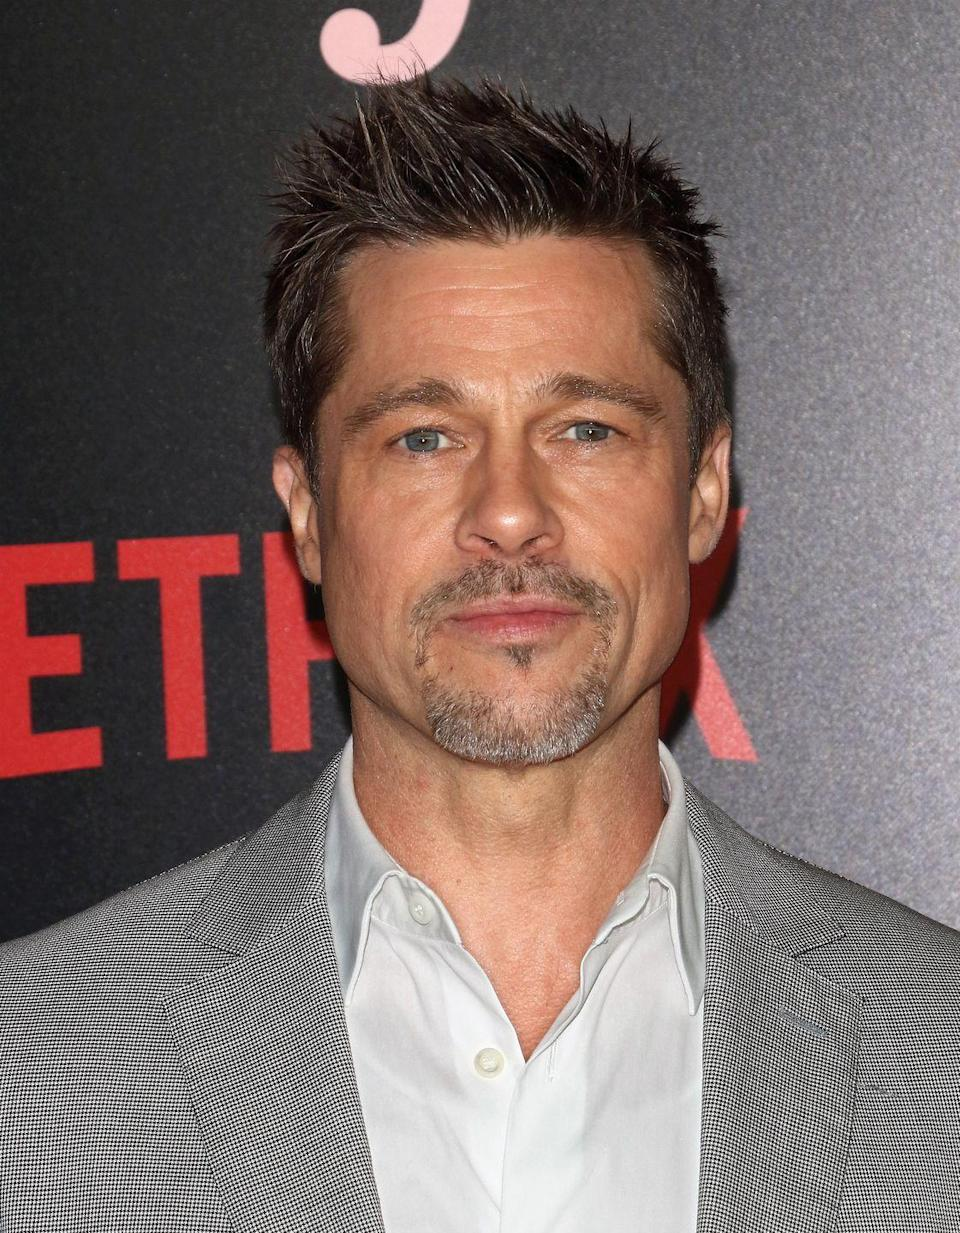 <p><strong>Real name: </strong>William Bradley Pitt</p>